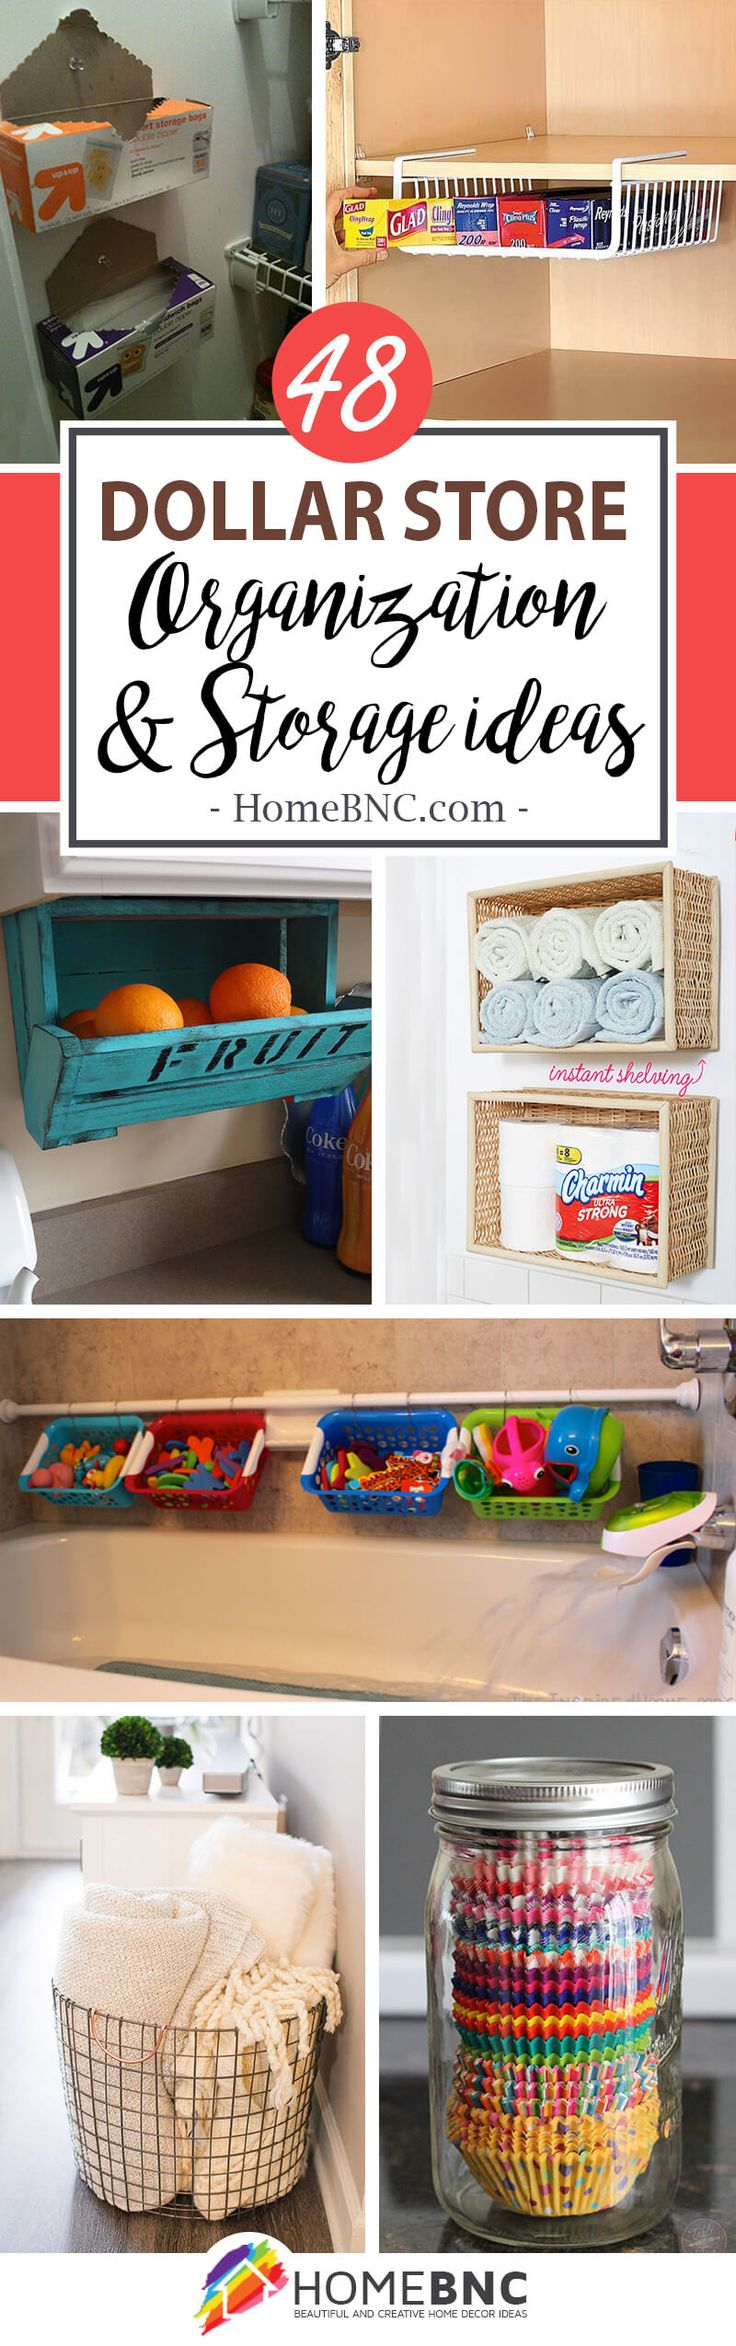 48 Creative Dollar Store Organization and Storage Ideas that will Help You  Keep Everything Organized